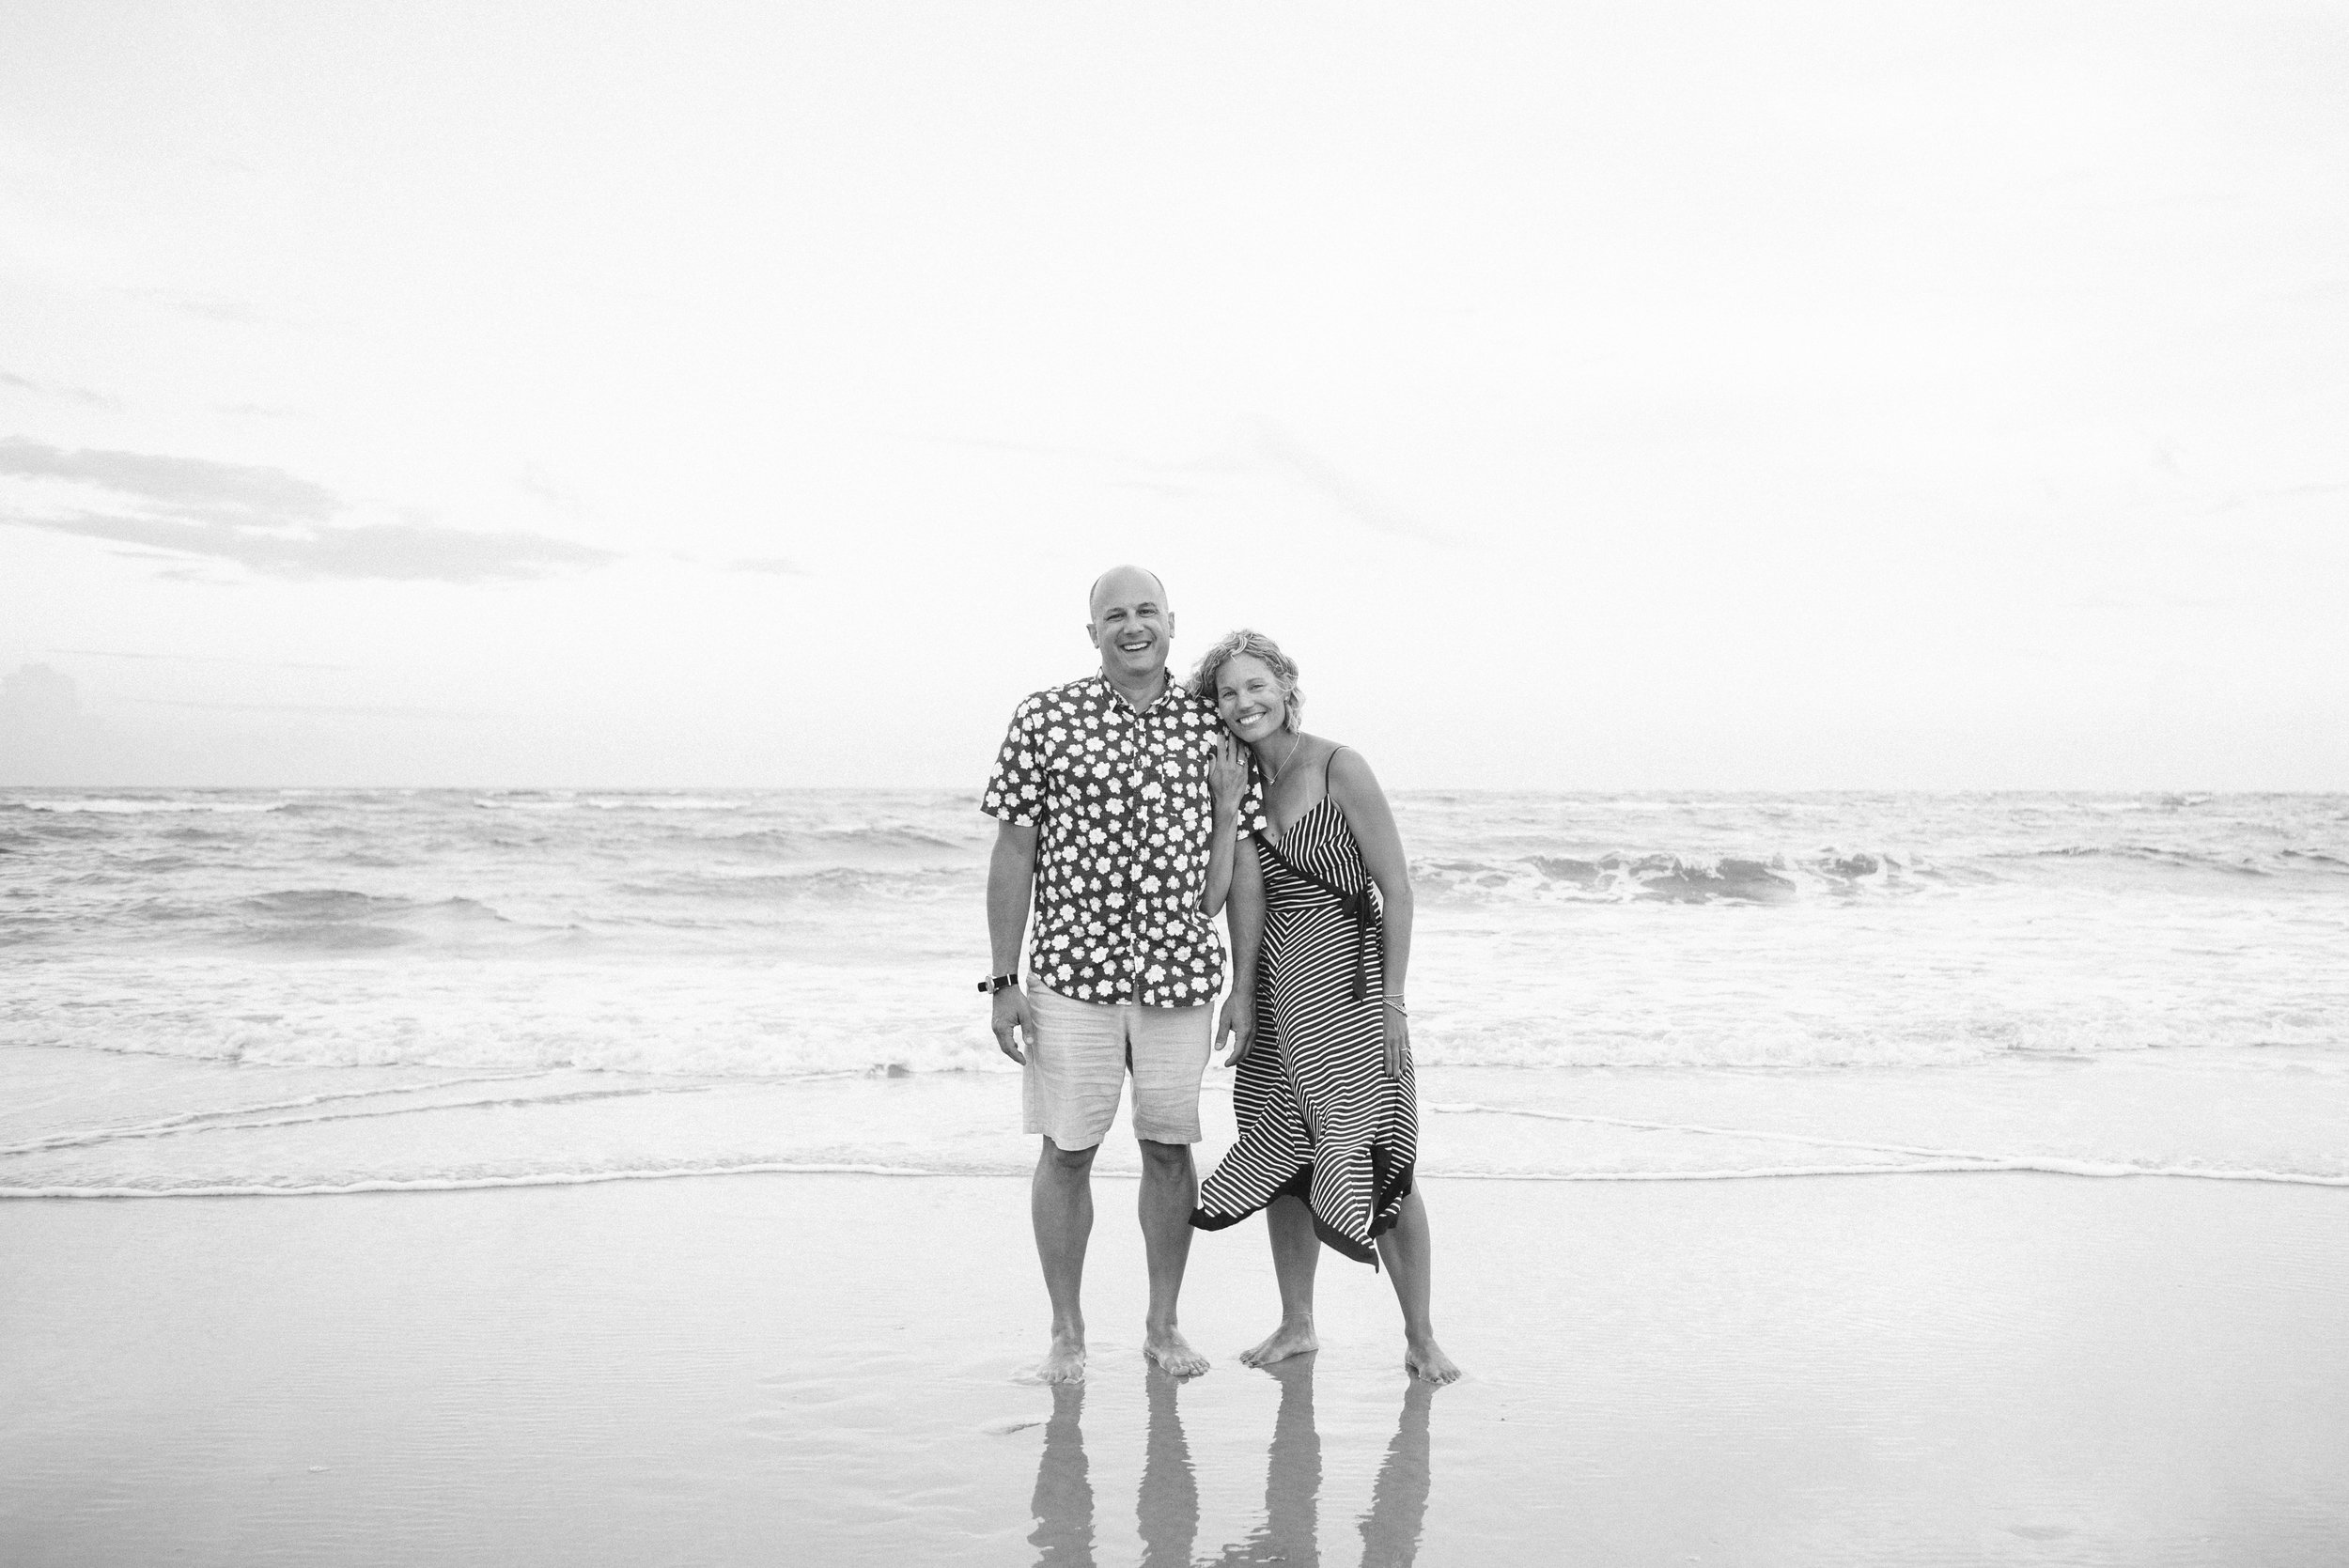 Bill-and-ashley-elope-to-savannah-tybee-island-elopement (133 of 182).jpg